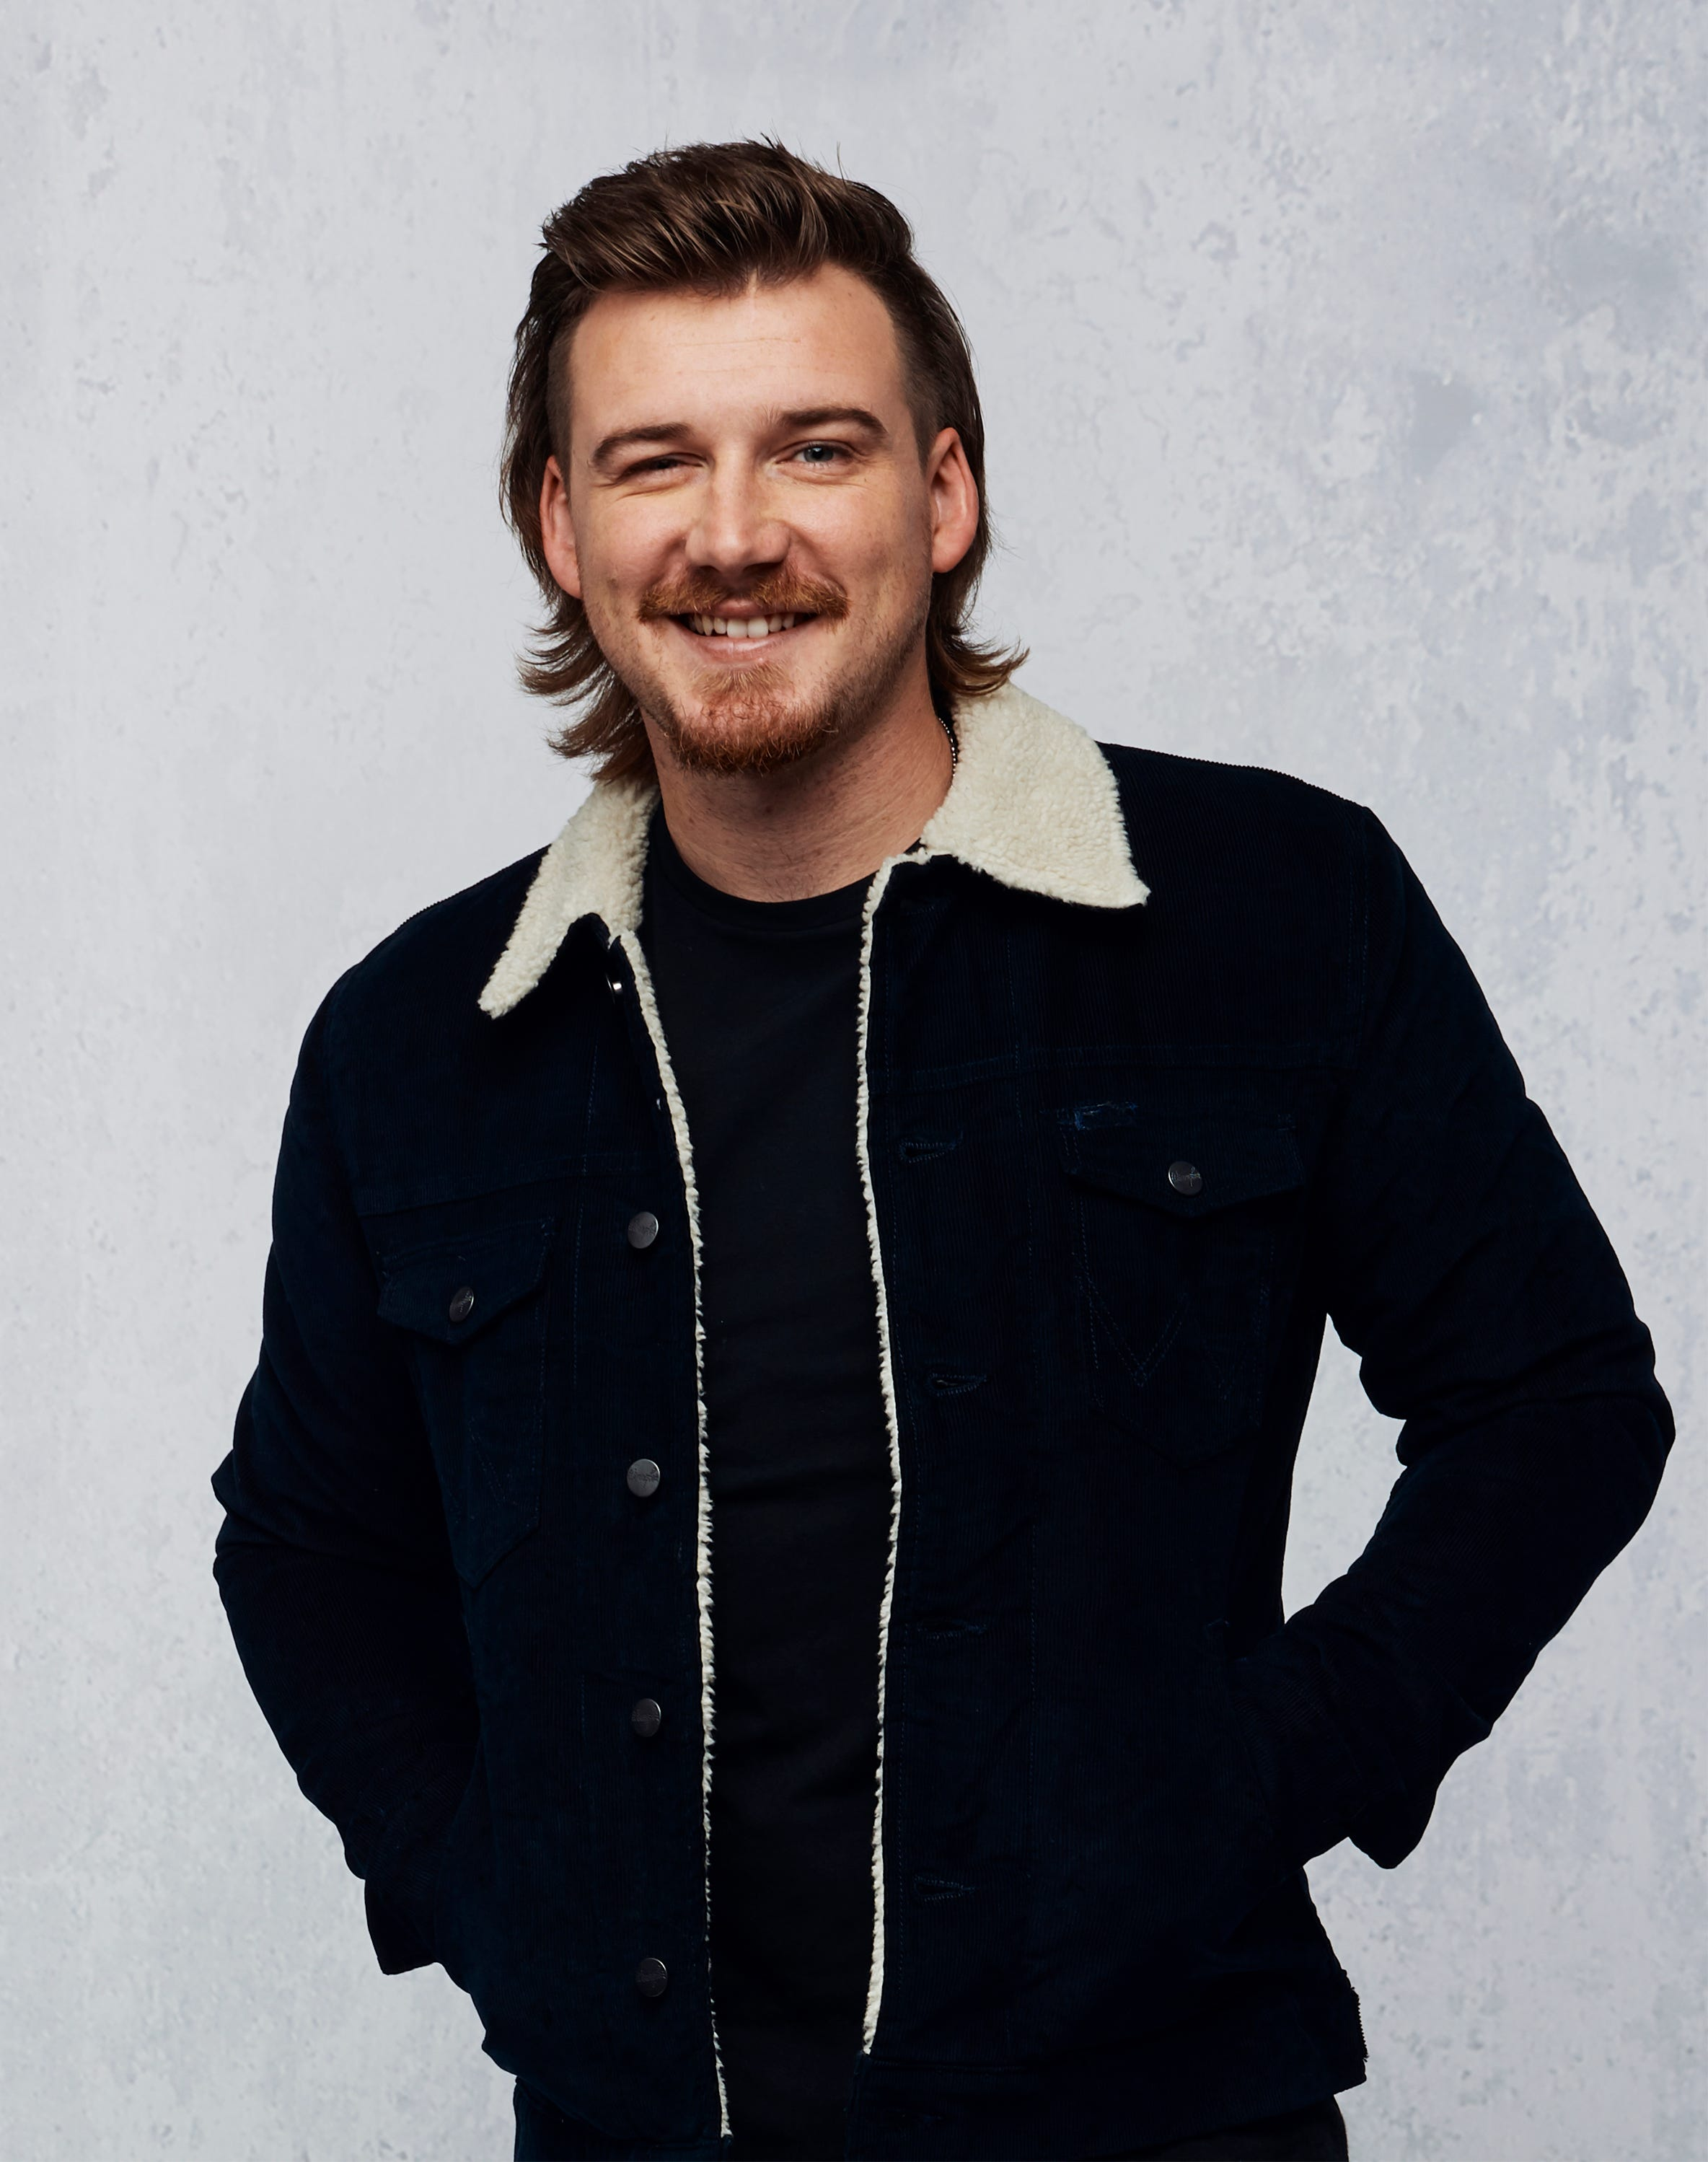 5 things to know about Knoxville country singer Morgan Wallen